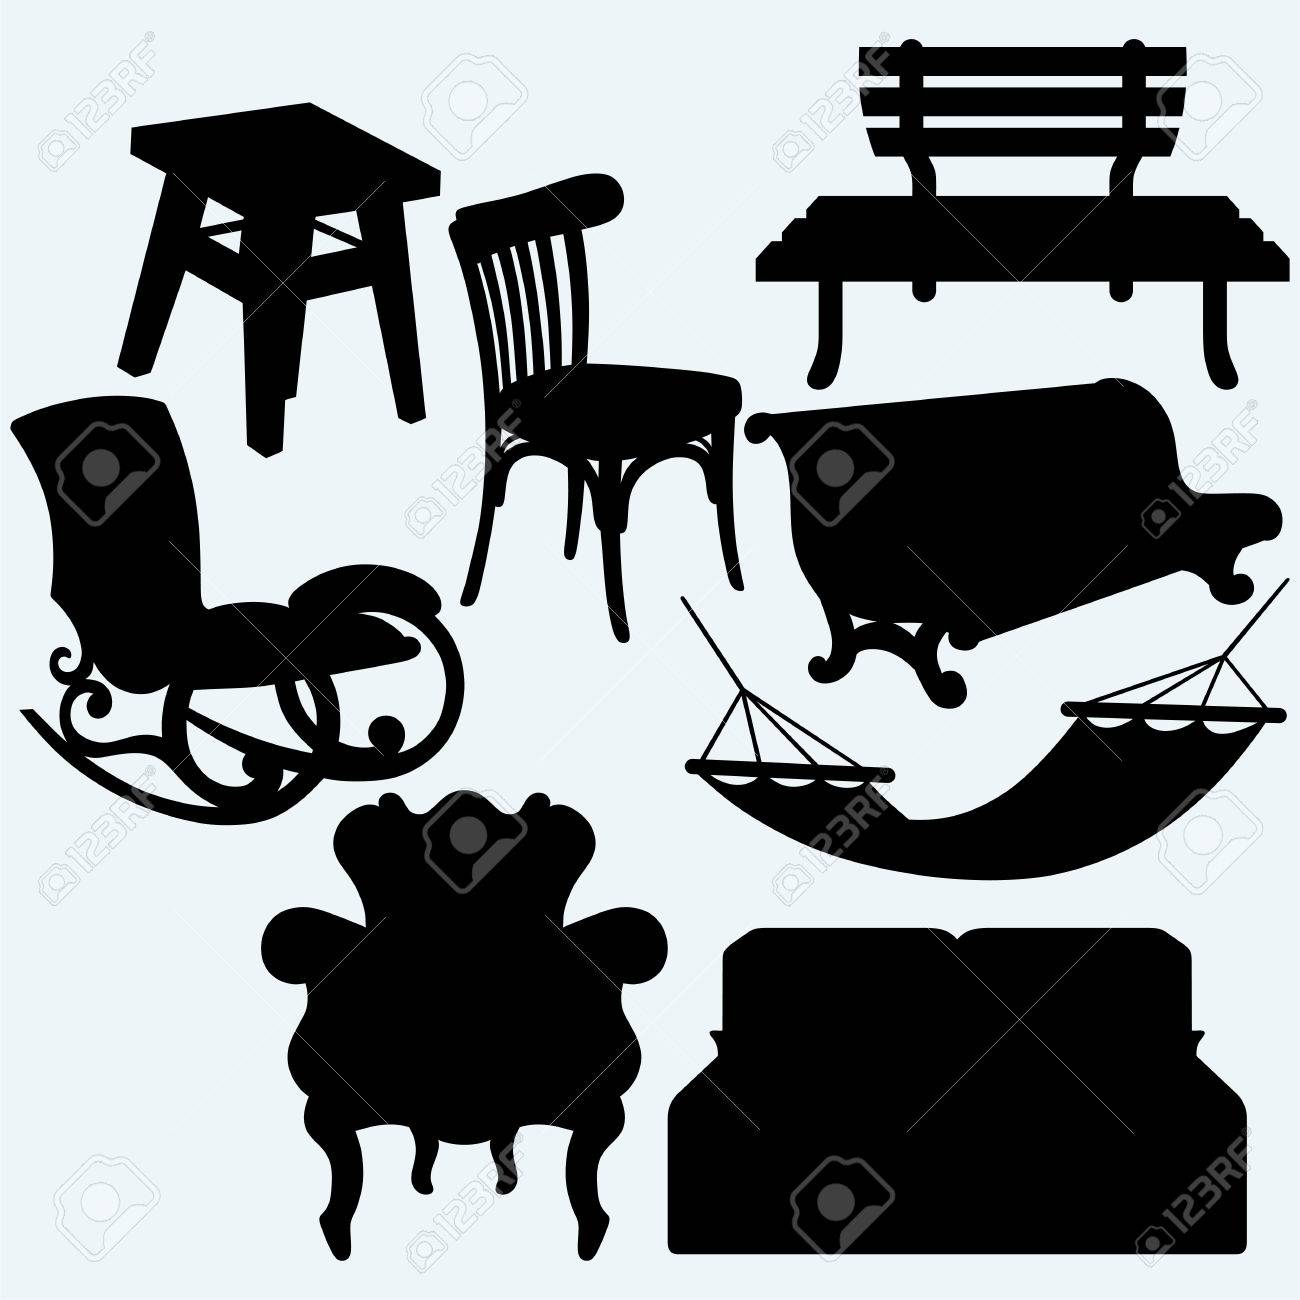 Set Of Furniture: Rocking Chair, Stool, Sofa, Bench And Hammock ...